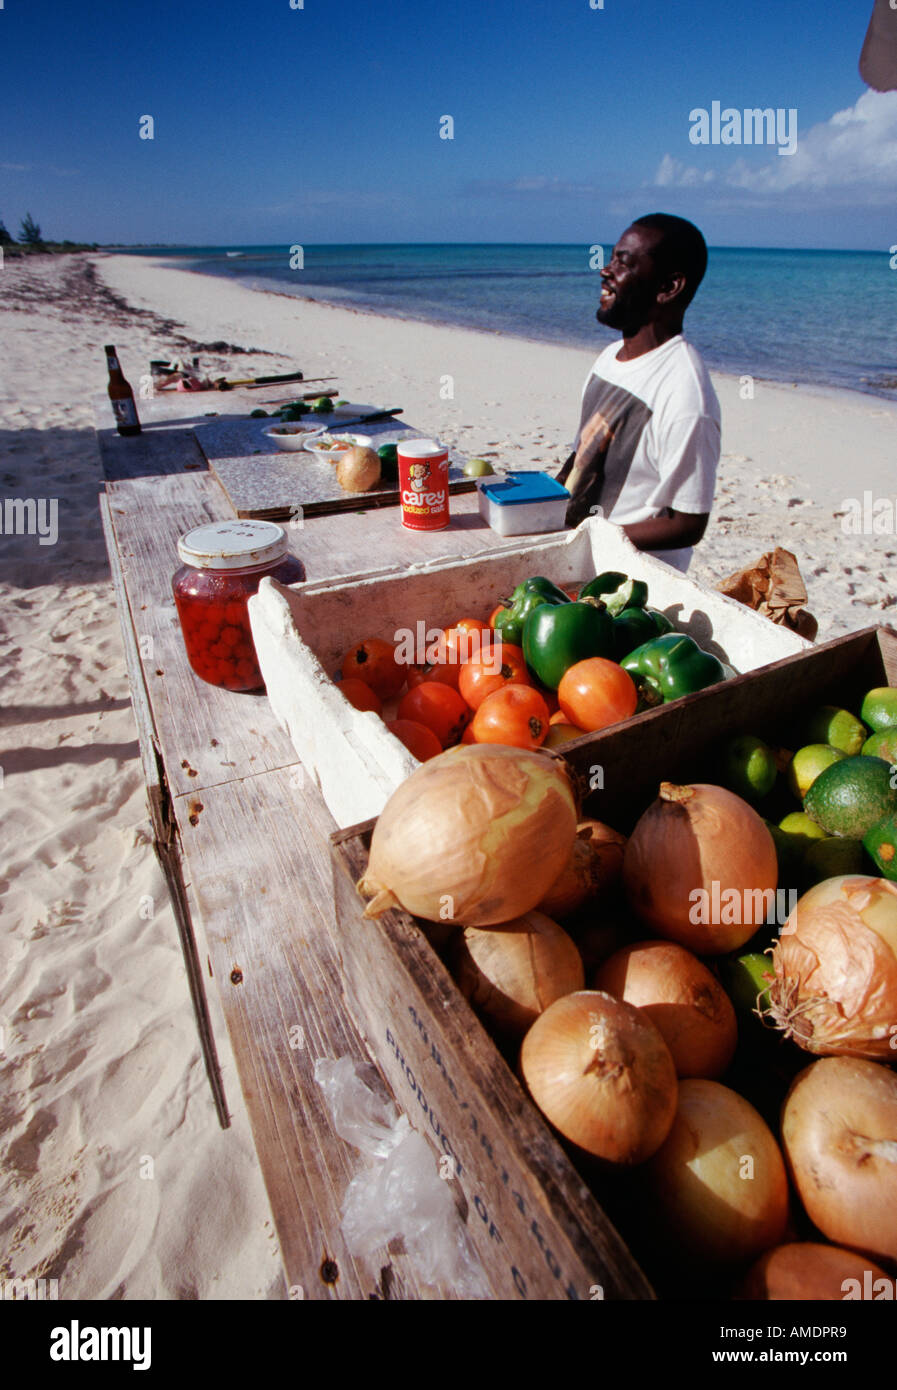 Turks Caicos Providenciales Da Conch Shack Boogaloo s Conch Bar in the Blue Hills area - Stock Image